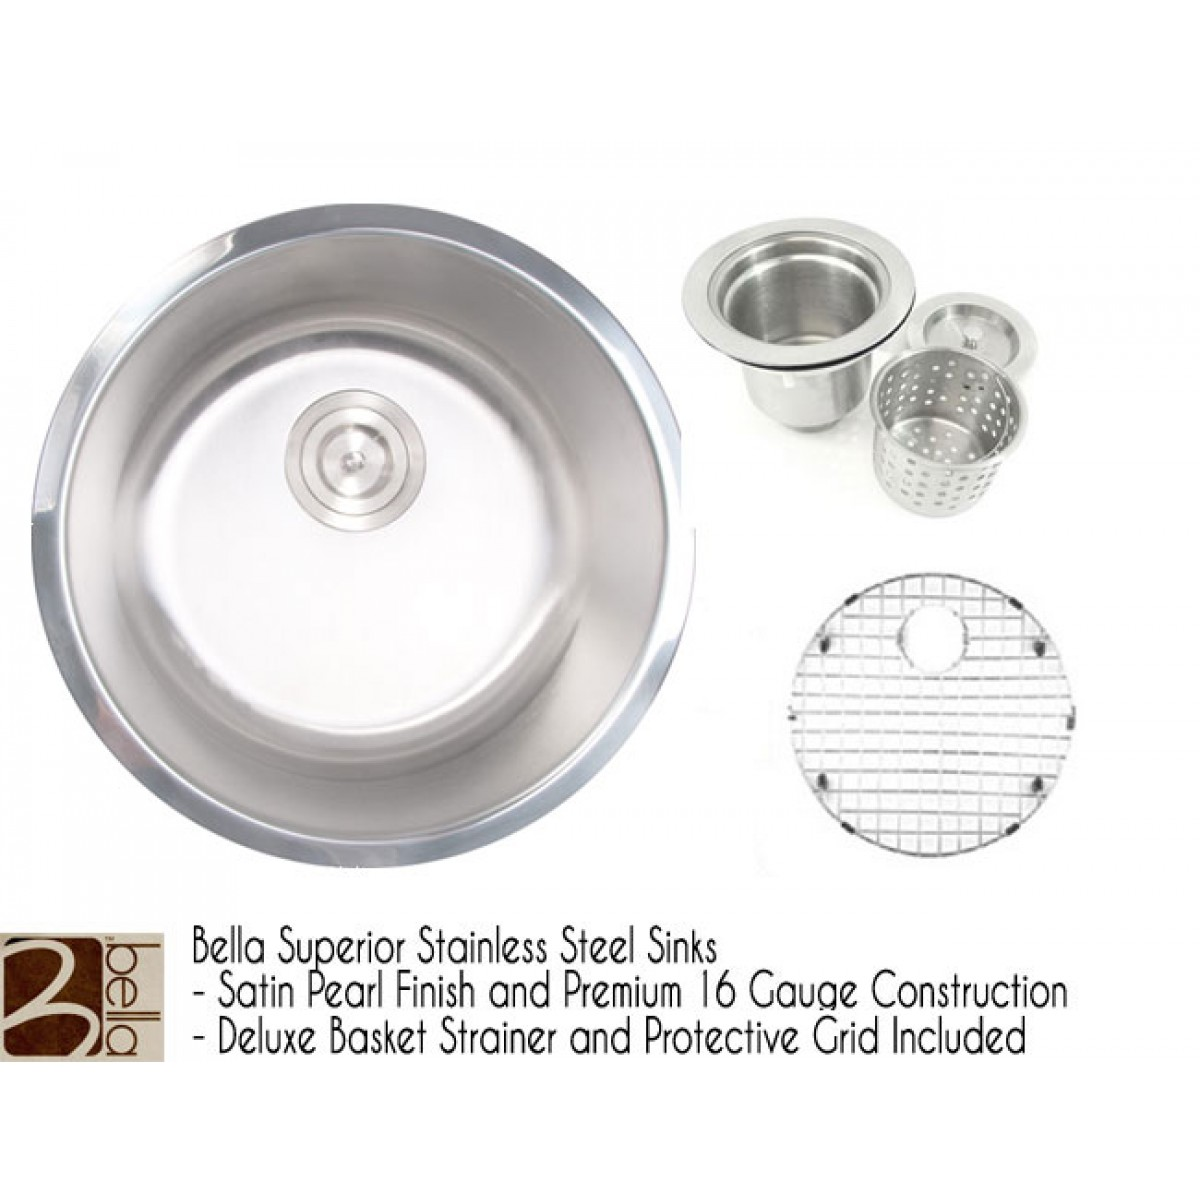 Bella 18 Inch Premium 16 Gauge Stainless Steel Undermount Single Bowl  Kitchen / Bar / Prep Sink Round with FREE ACCESSORIES